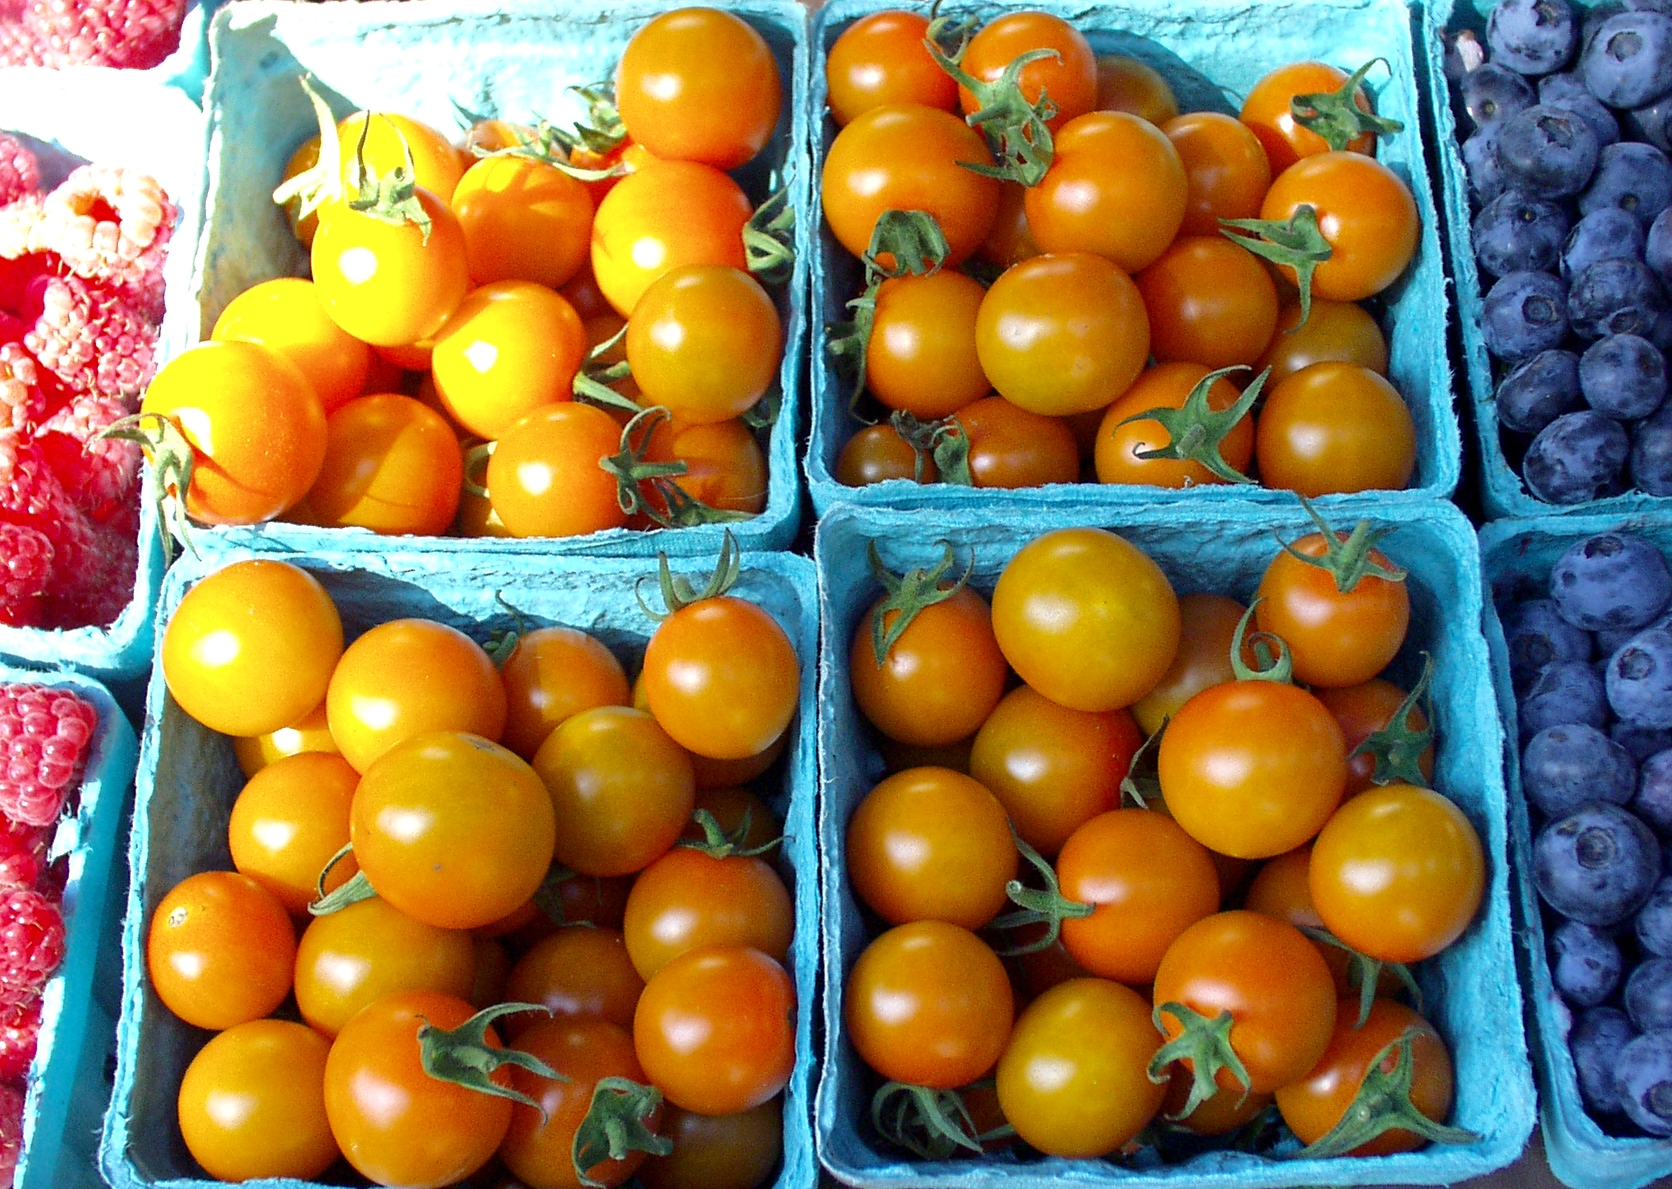 Sungold cherry tomatoes from Alm Hill. Photo copyright 2009 by Zachary D. Lyons.